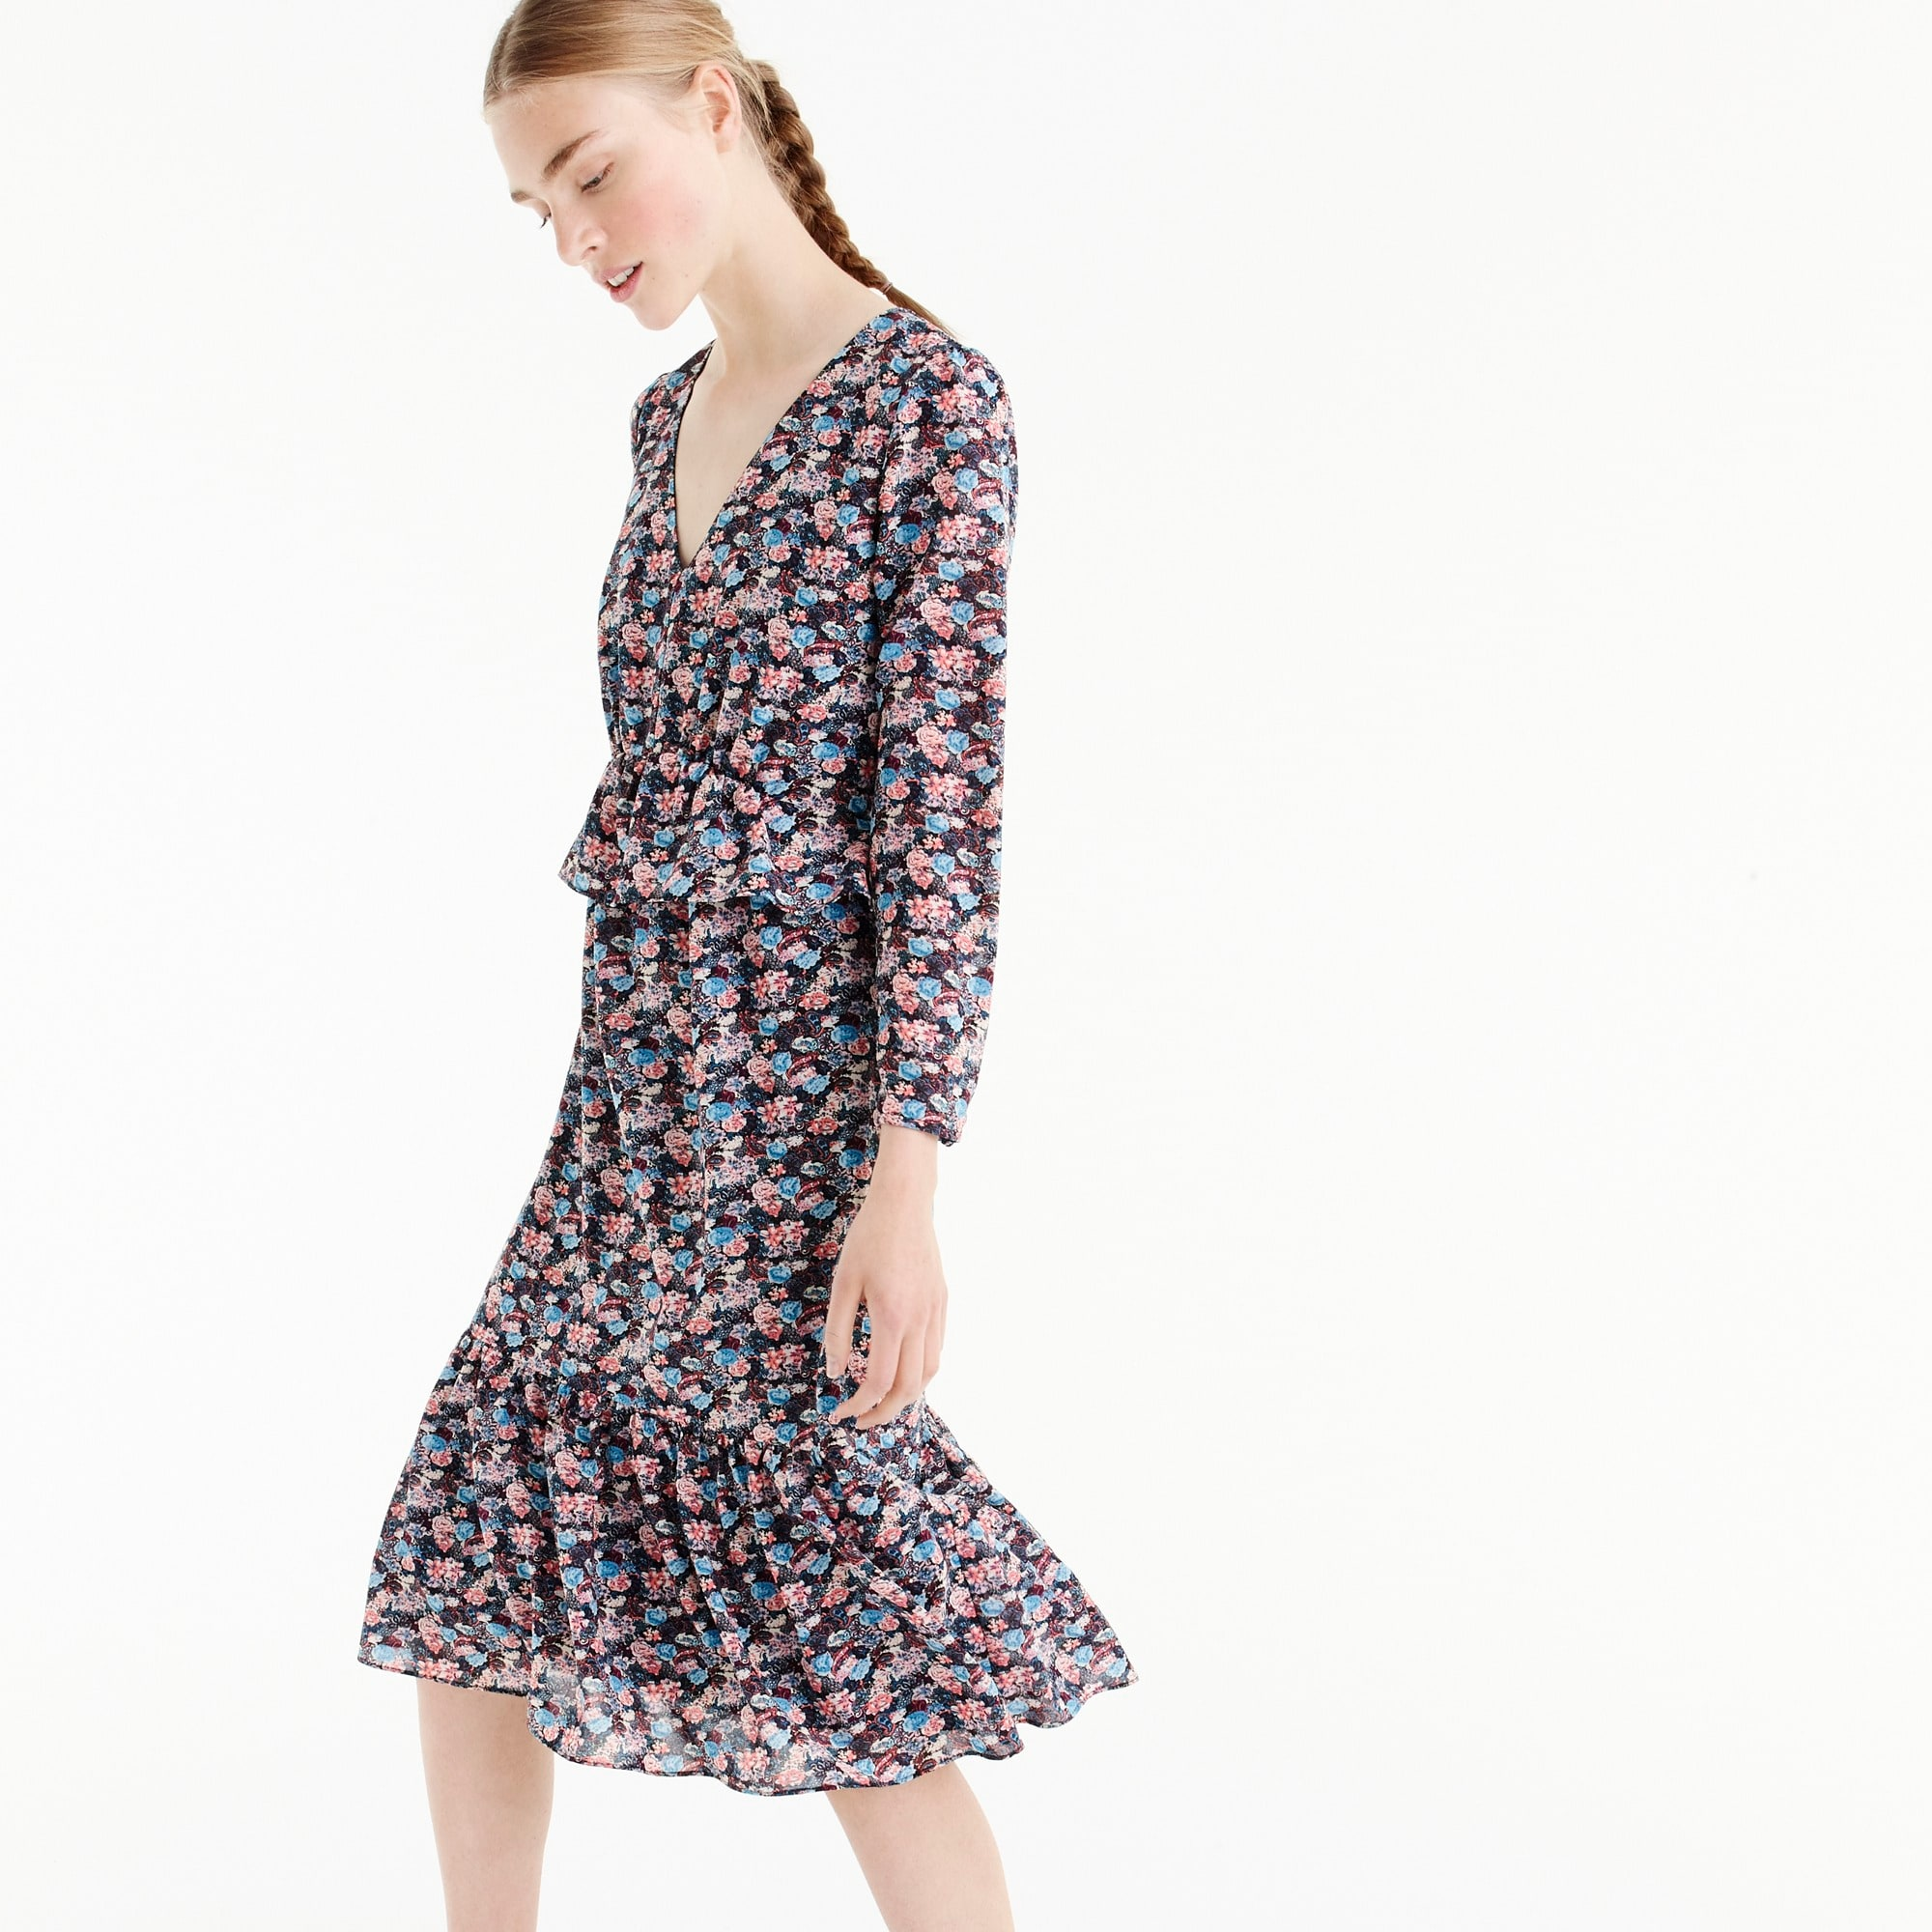 Tall Ruffle-hem dress in paisley floral